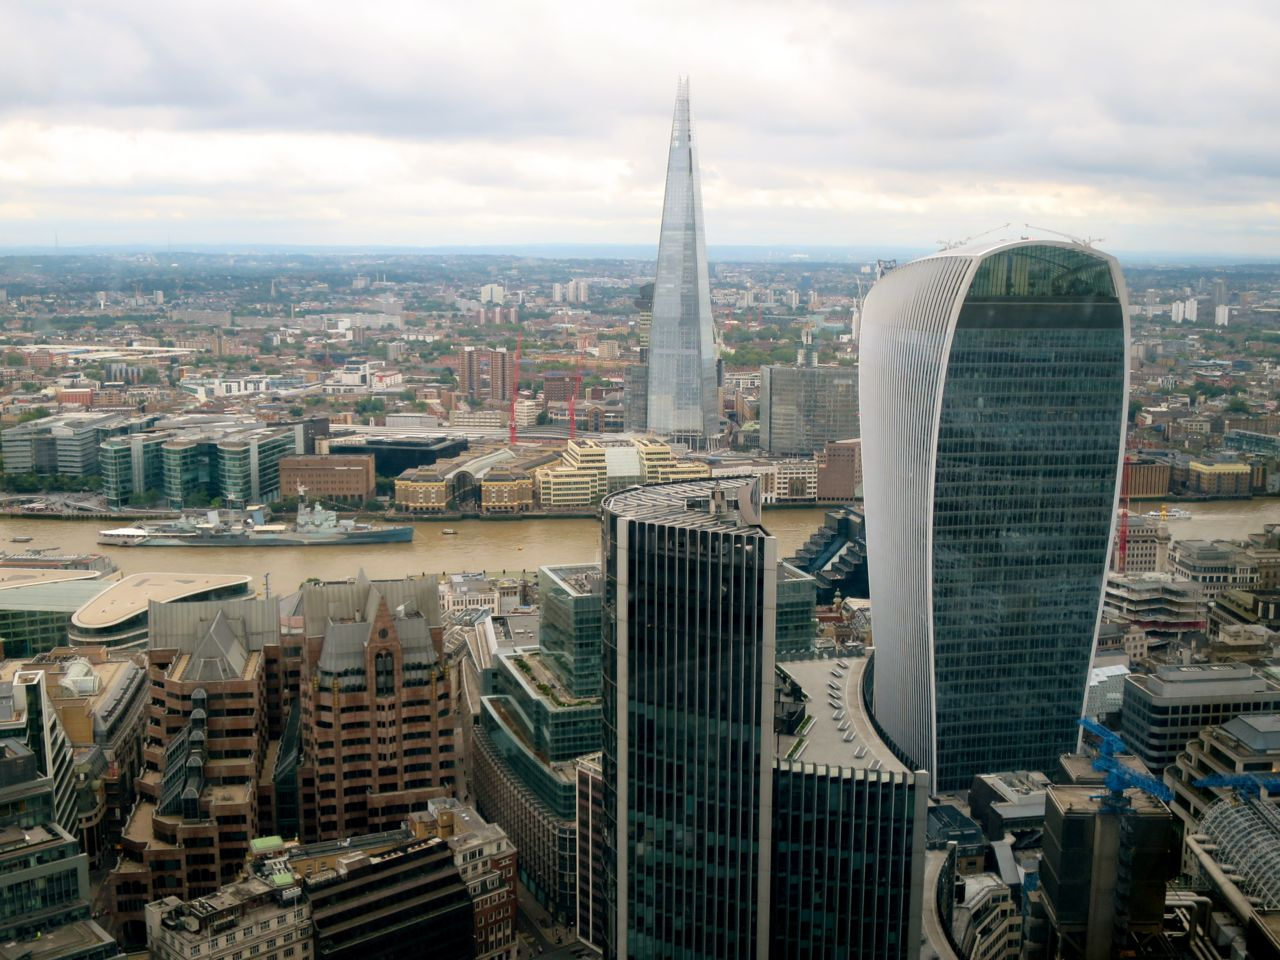 Shard and Walkie Talkie River View